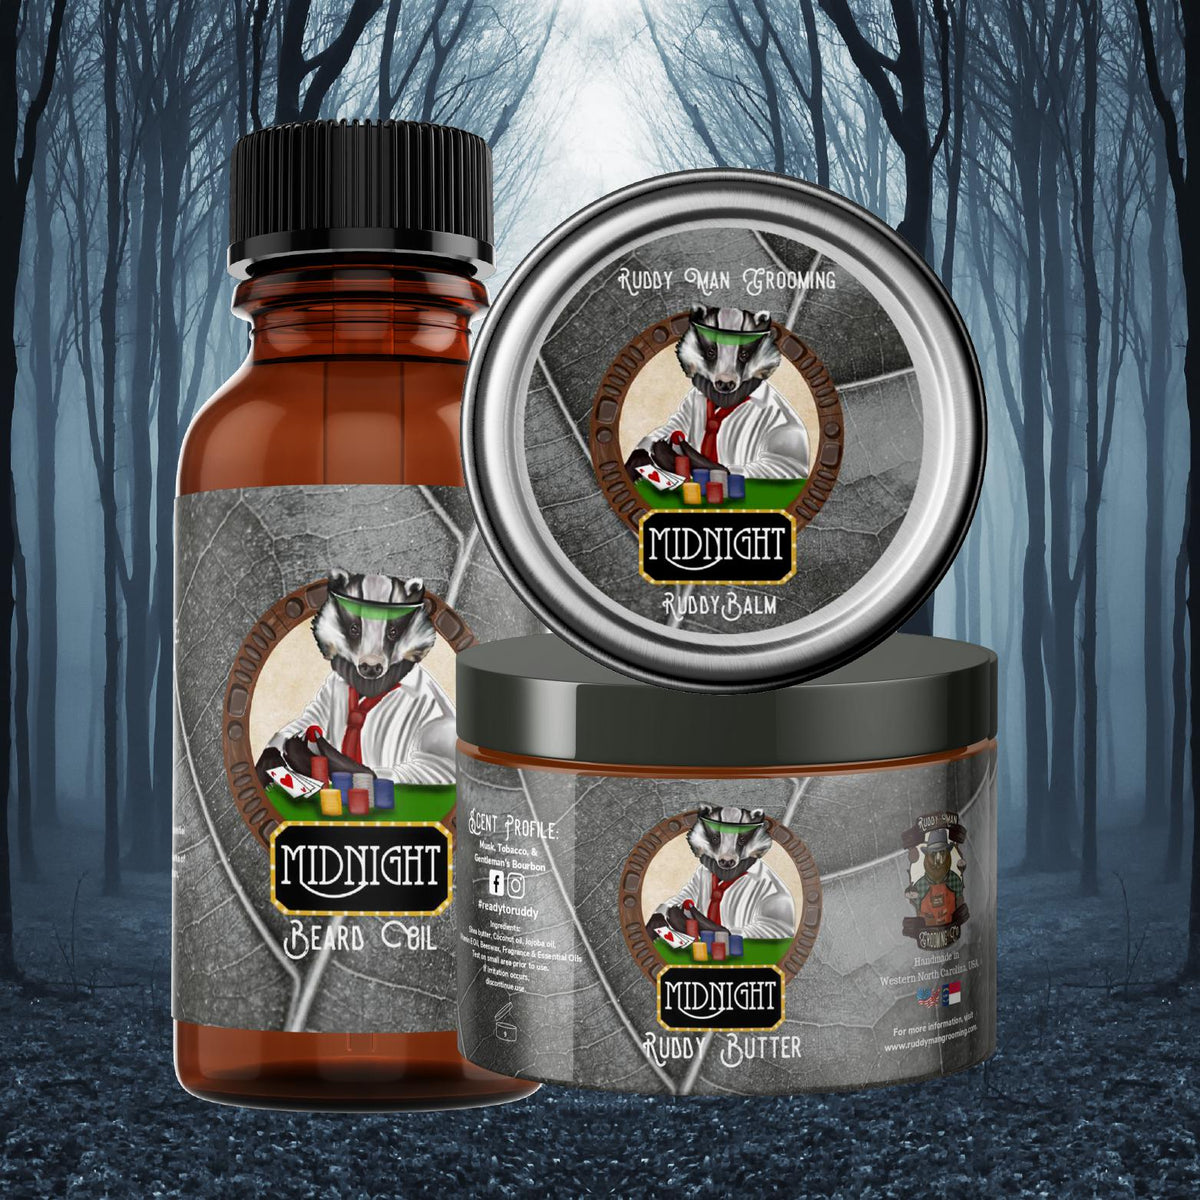 Prized Pie-A Warm Blackberry Pie Beard Oil/Ruddy Butter Duo